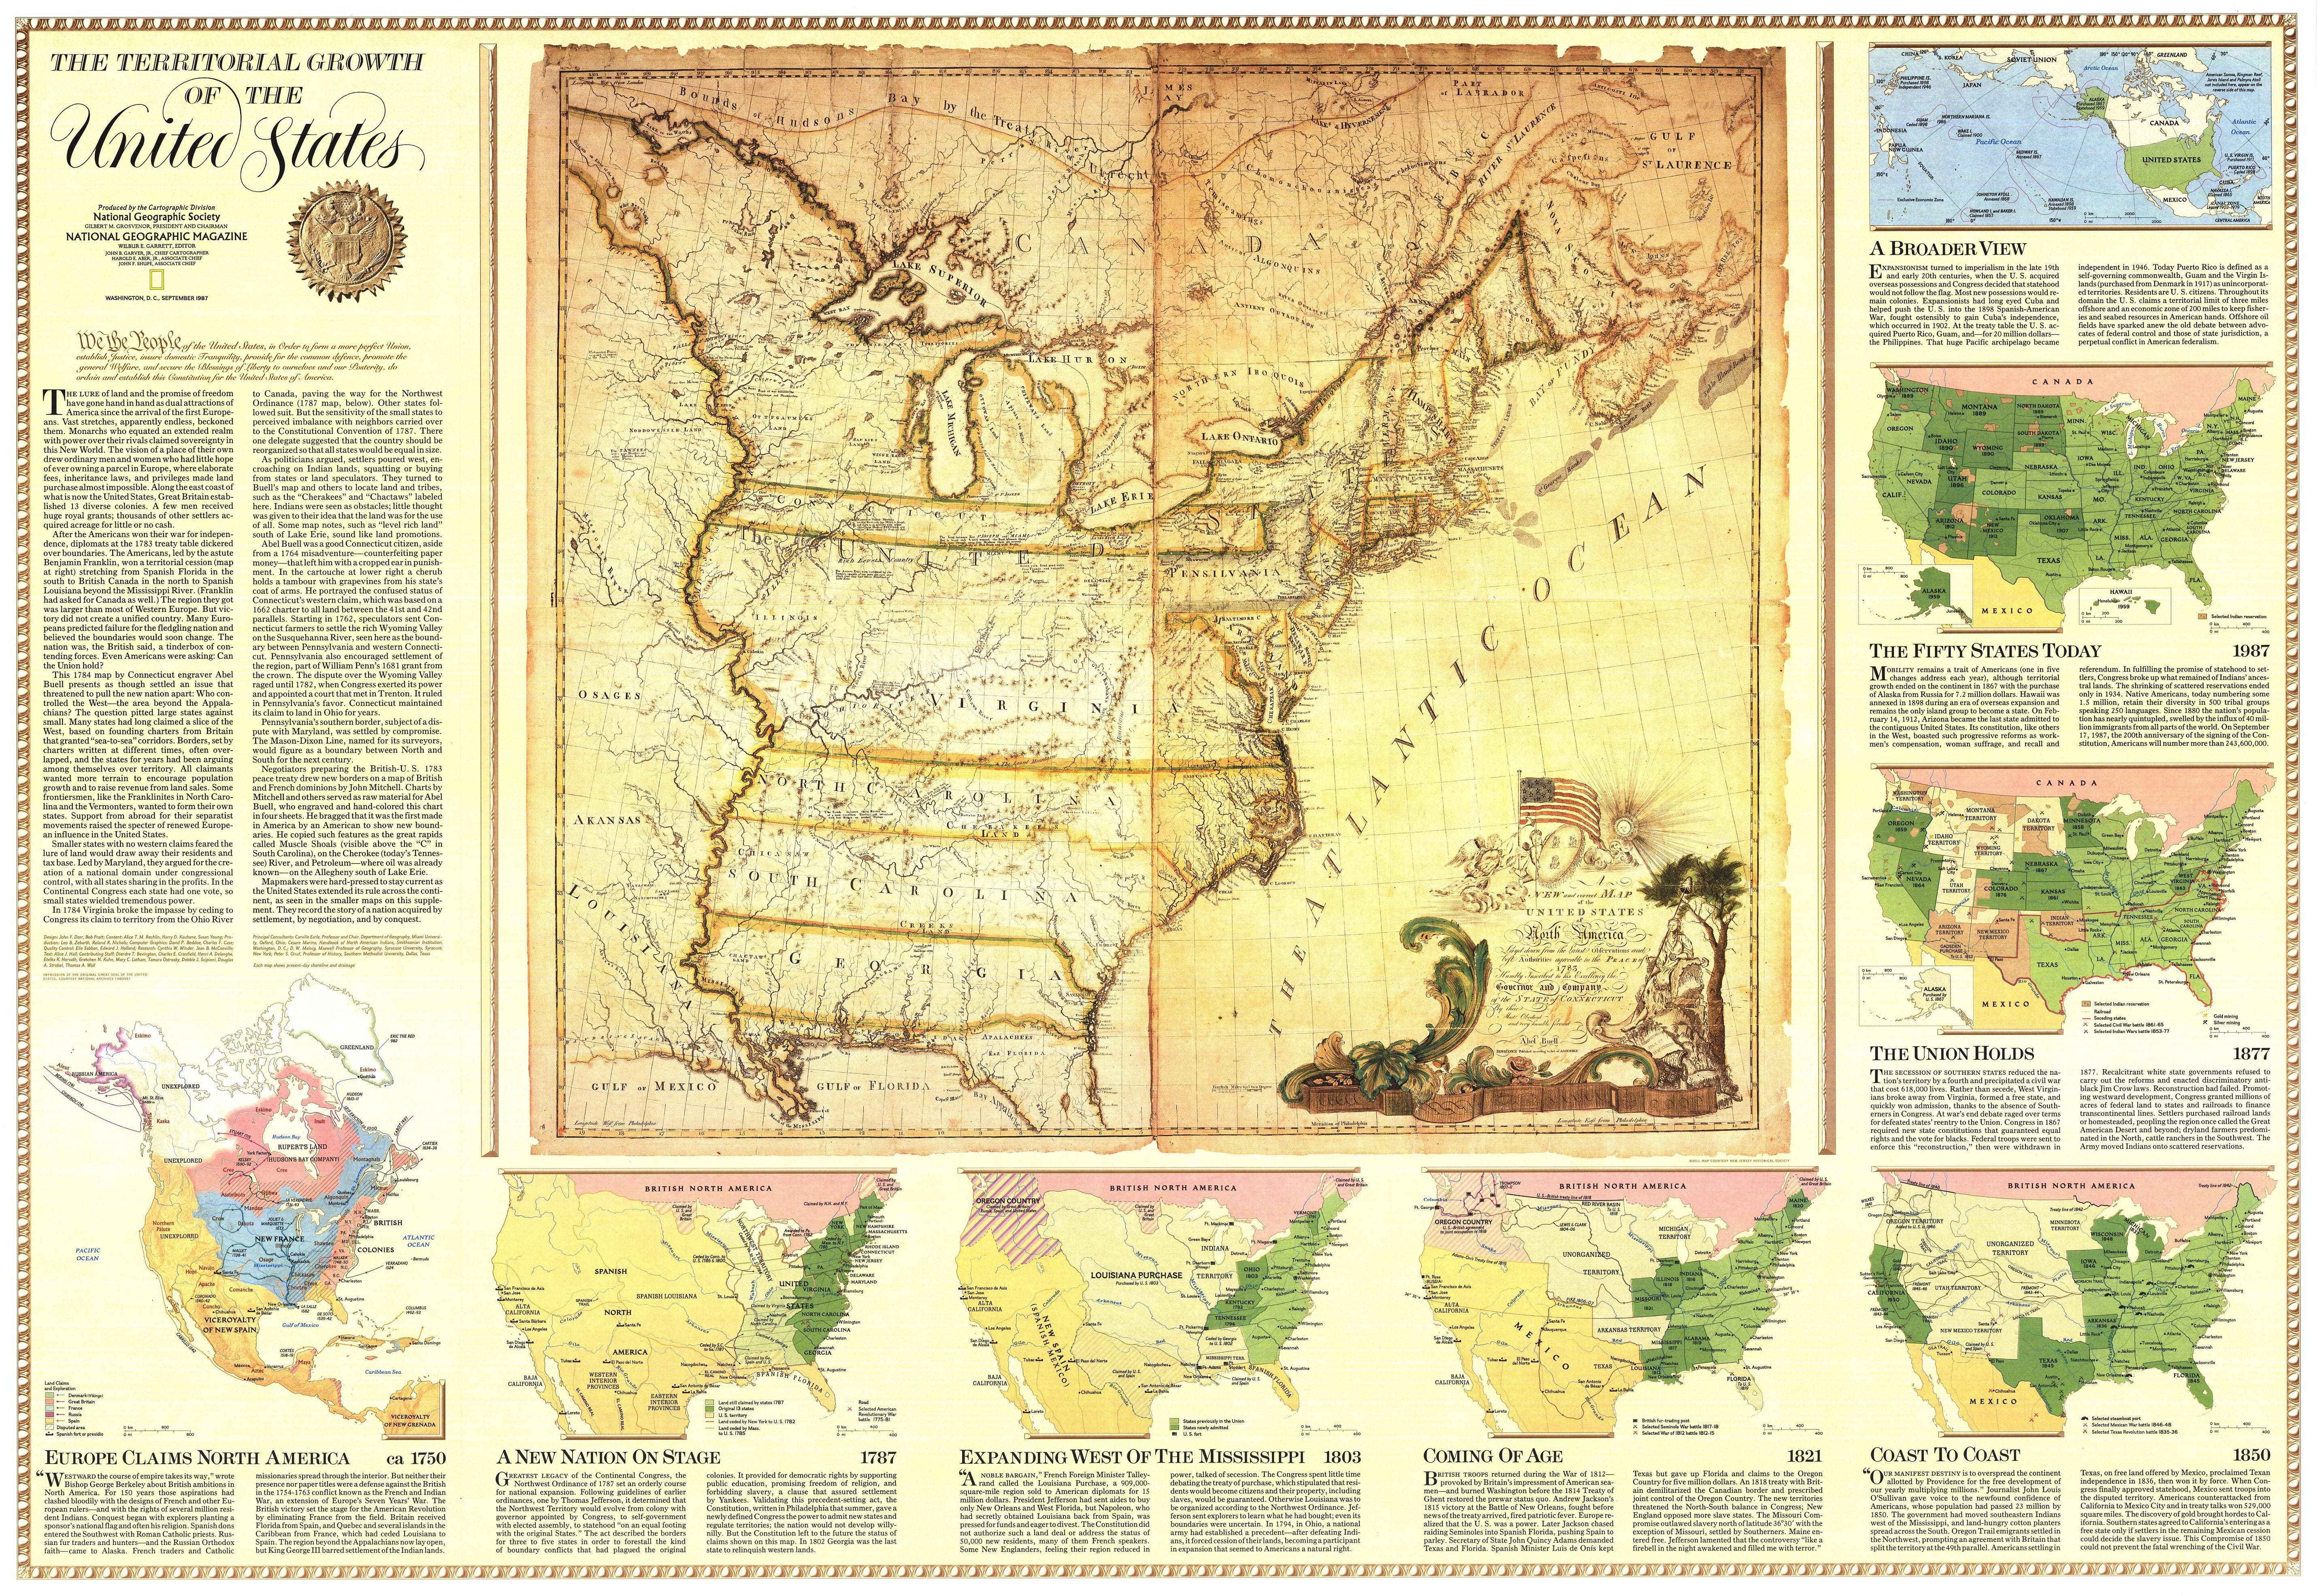 1987 Territorial Growth Of The United States Map